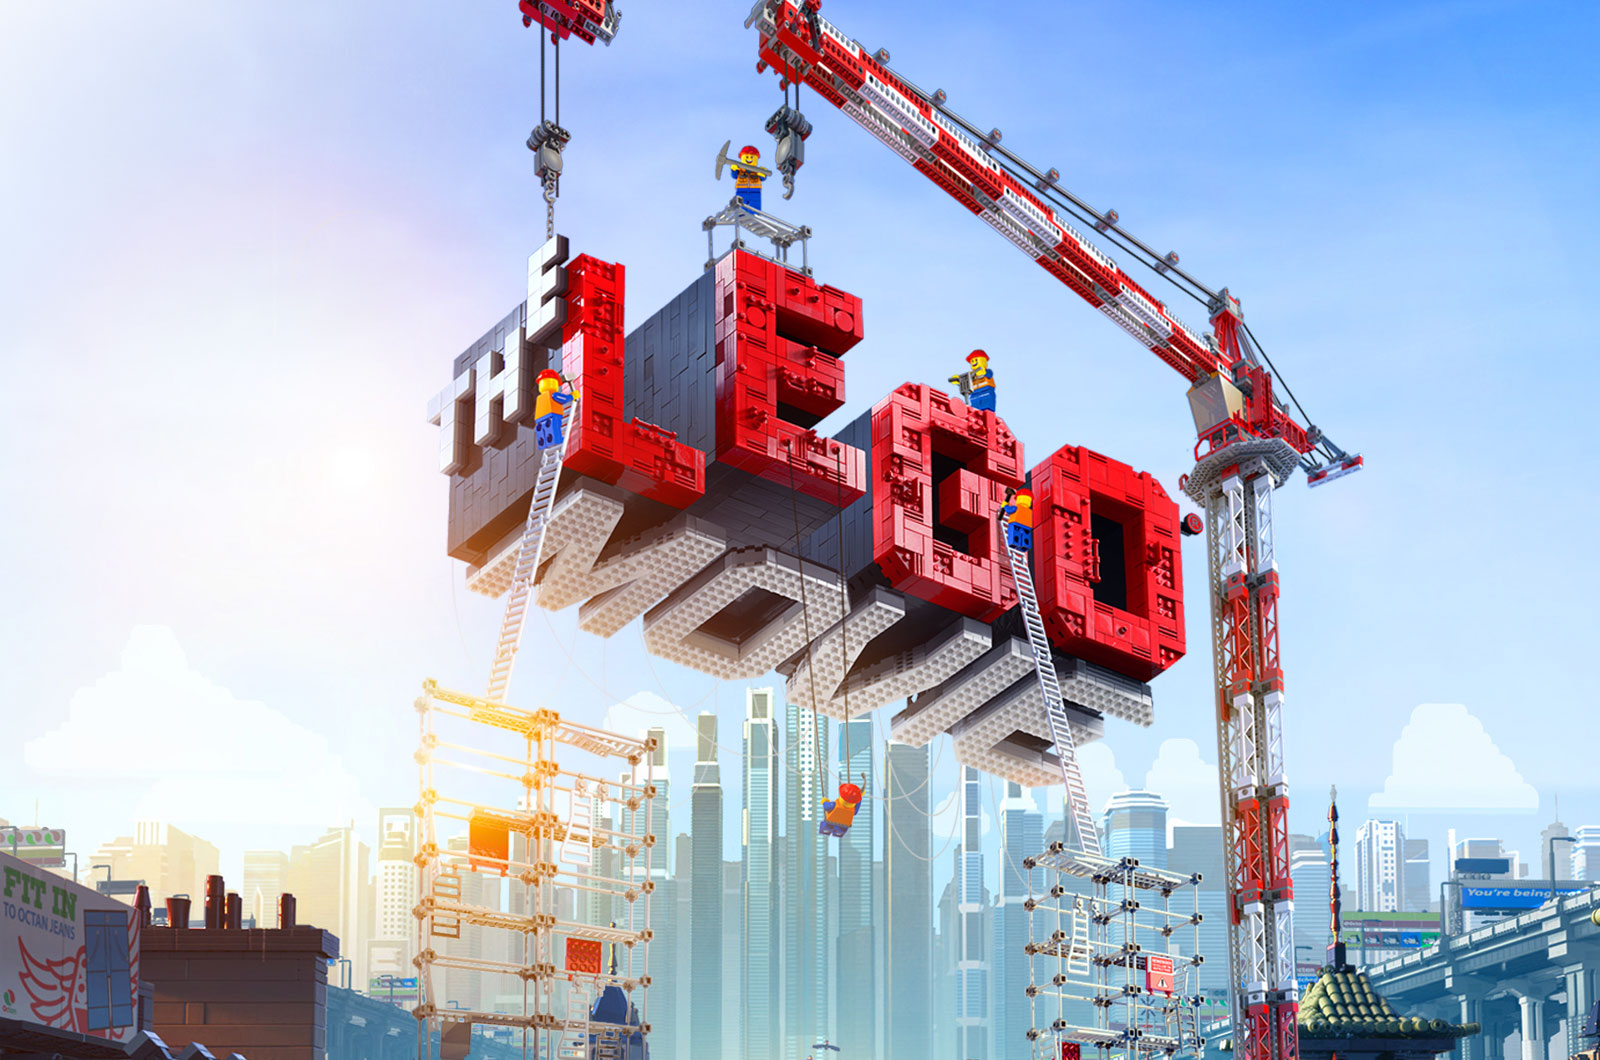 The_LEGO_Movie.jpg